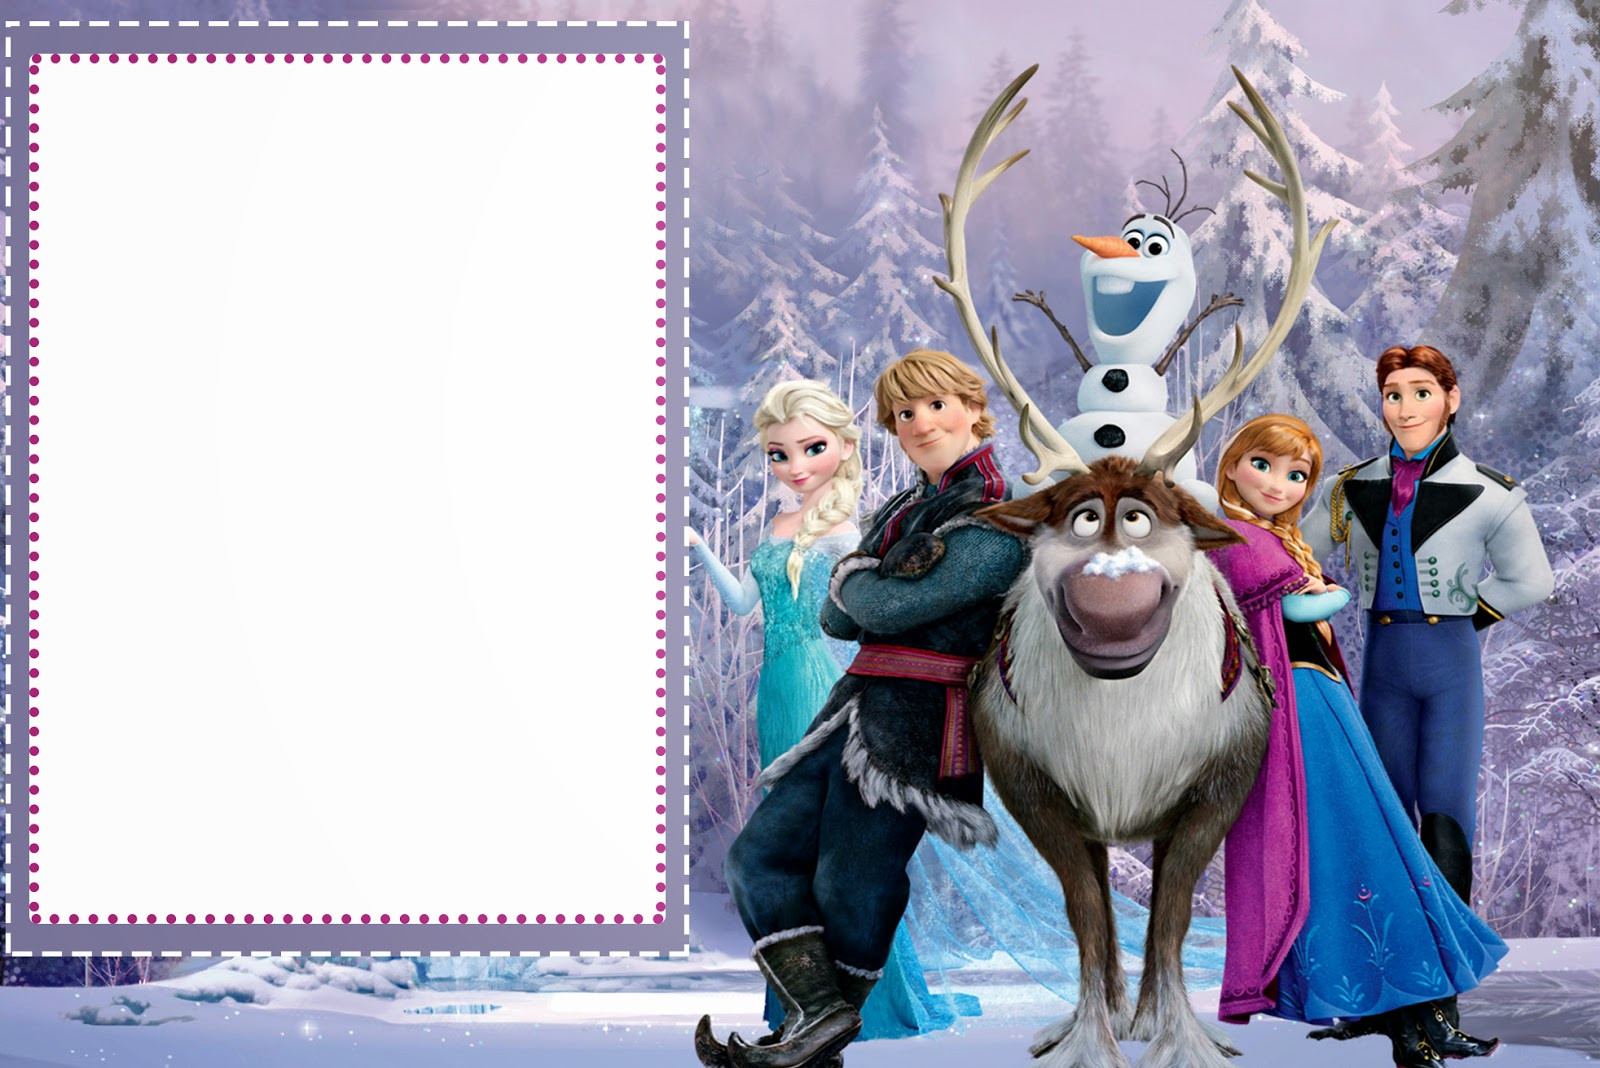 Frozen Printable Invitation Frozen Free Printable Cards or Party Invitations Oh My